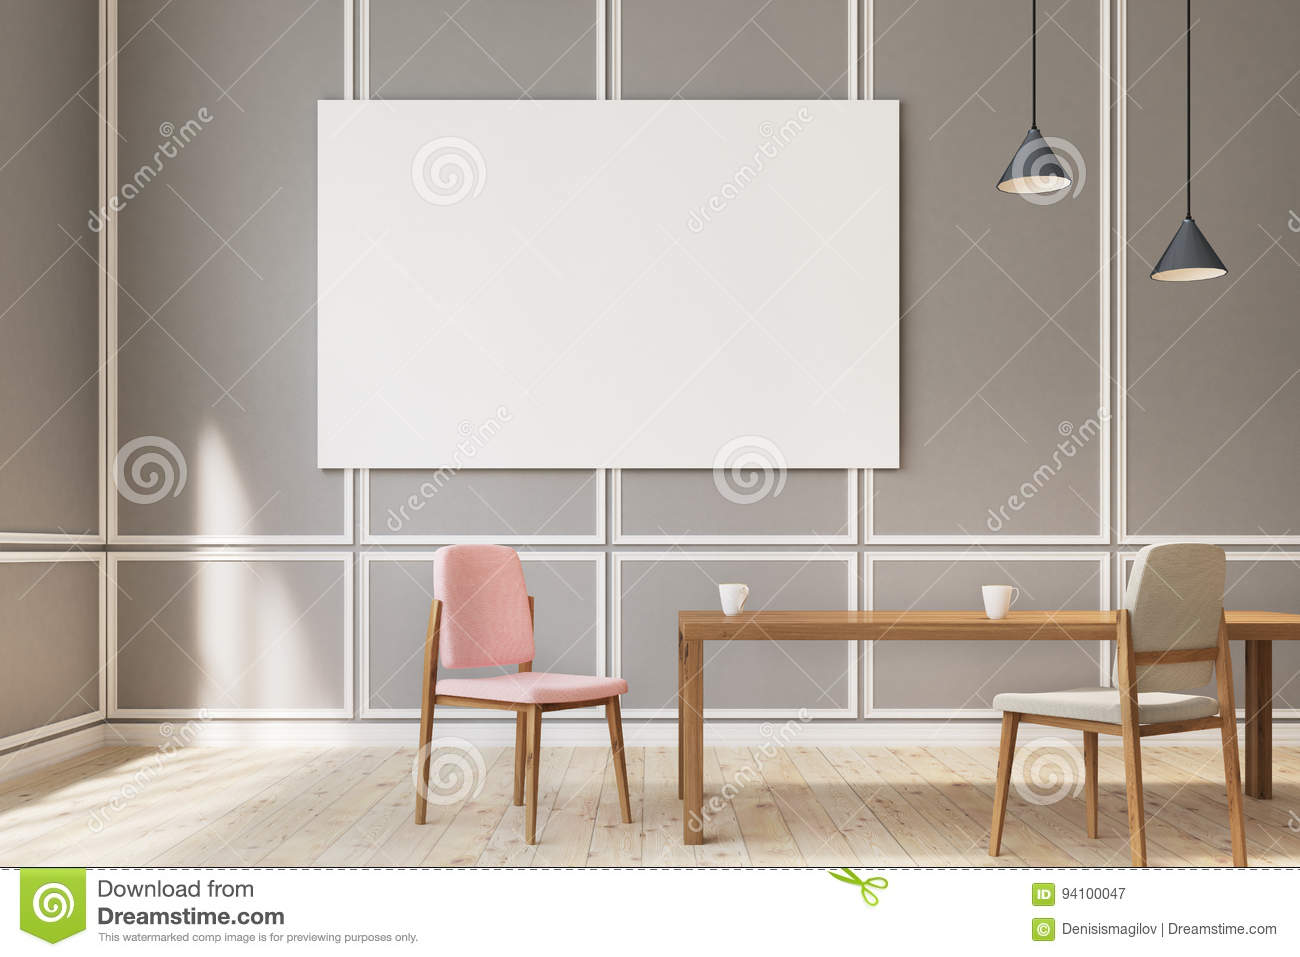 Large Poster Dining Room, Chairs Stock Illustration - Illustration ...